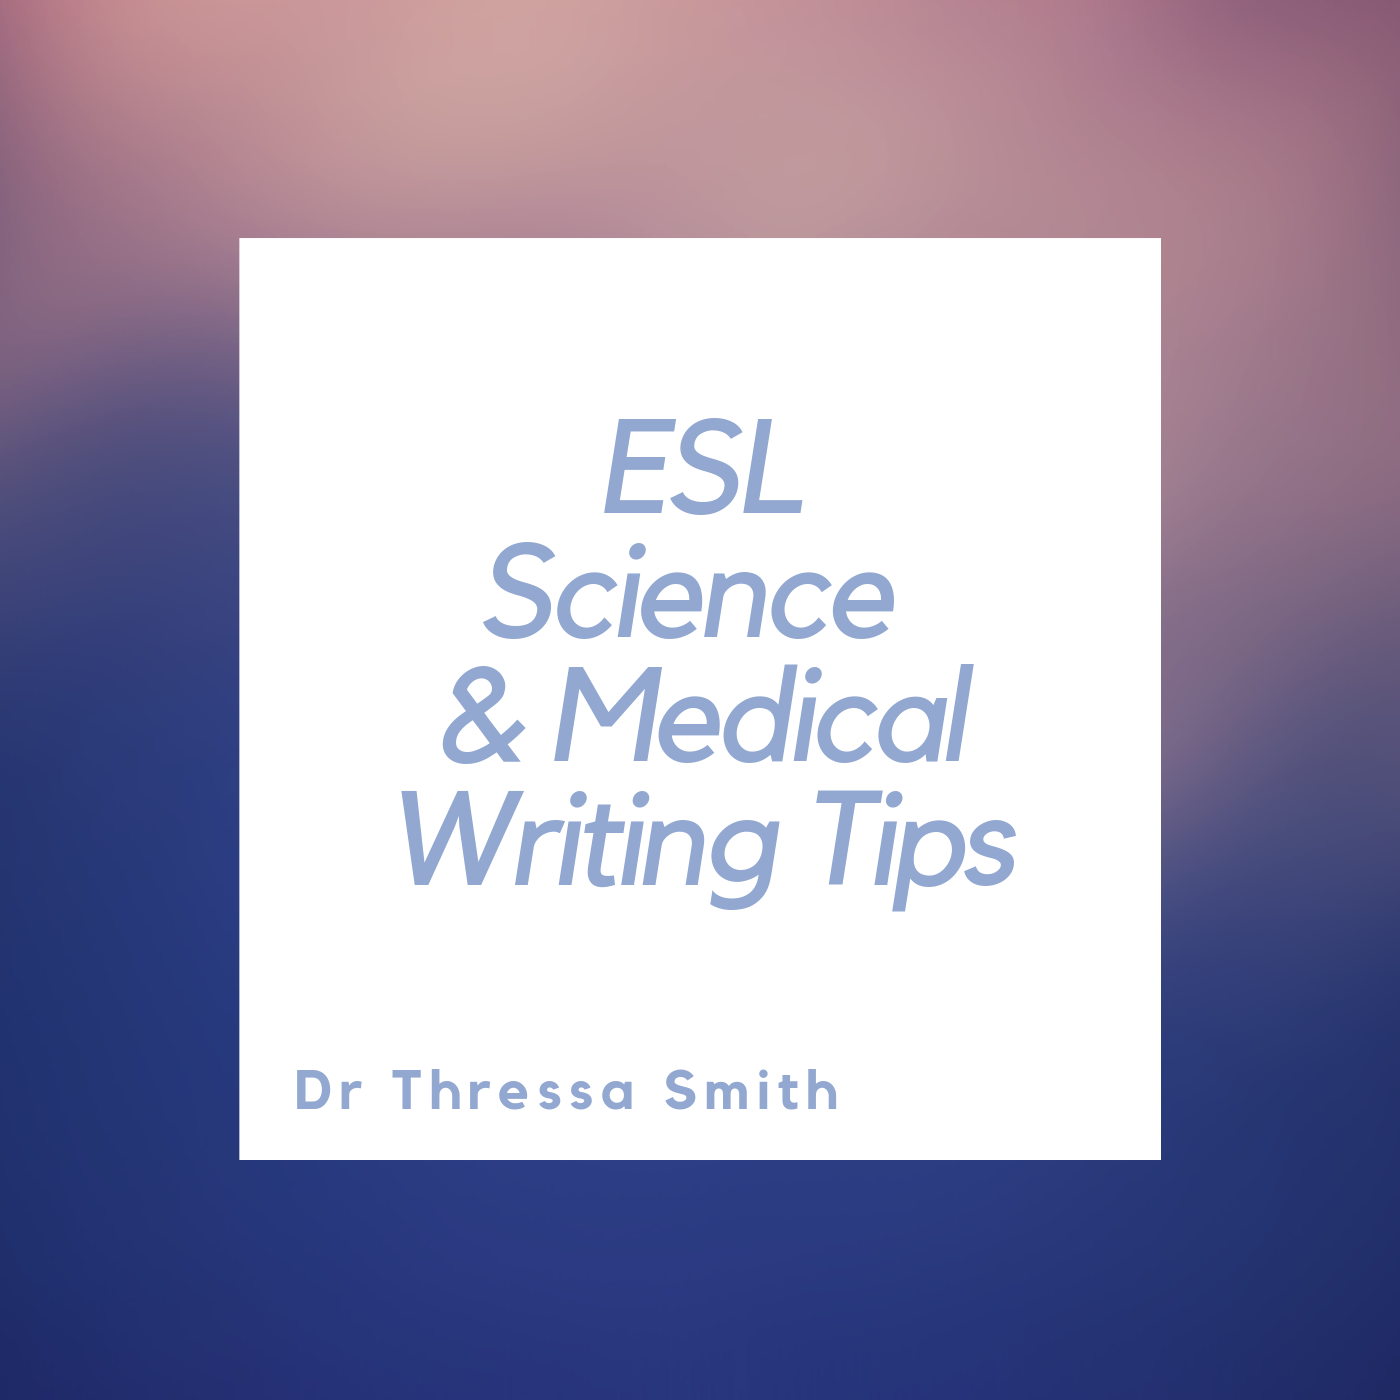 ESL Science and Medical Writing Tips